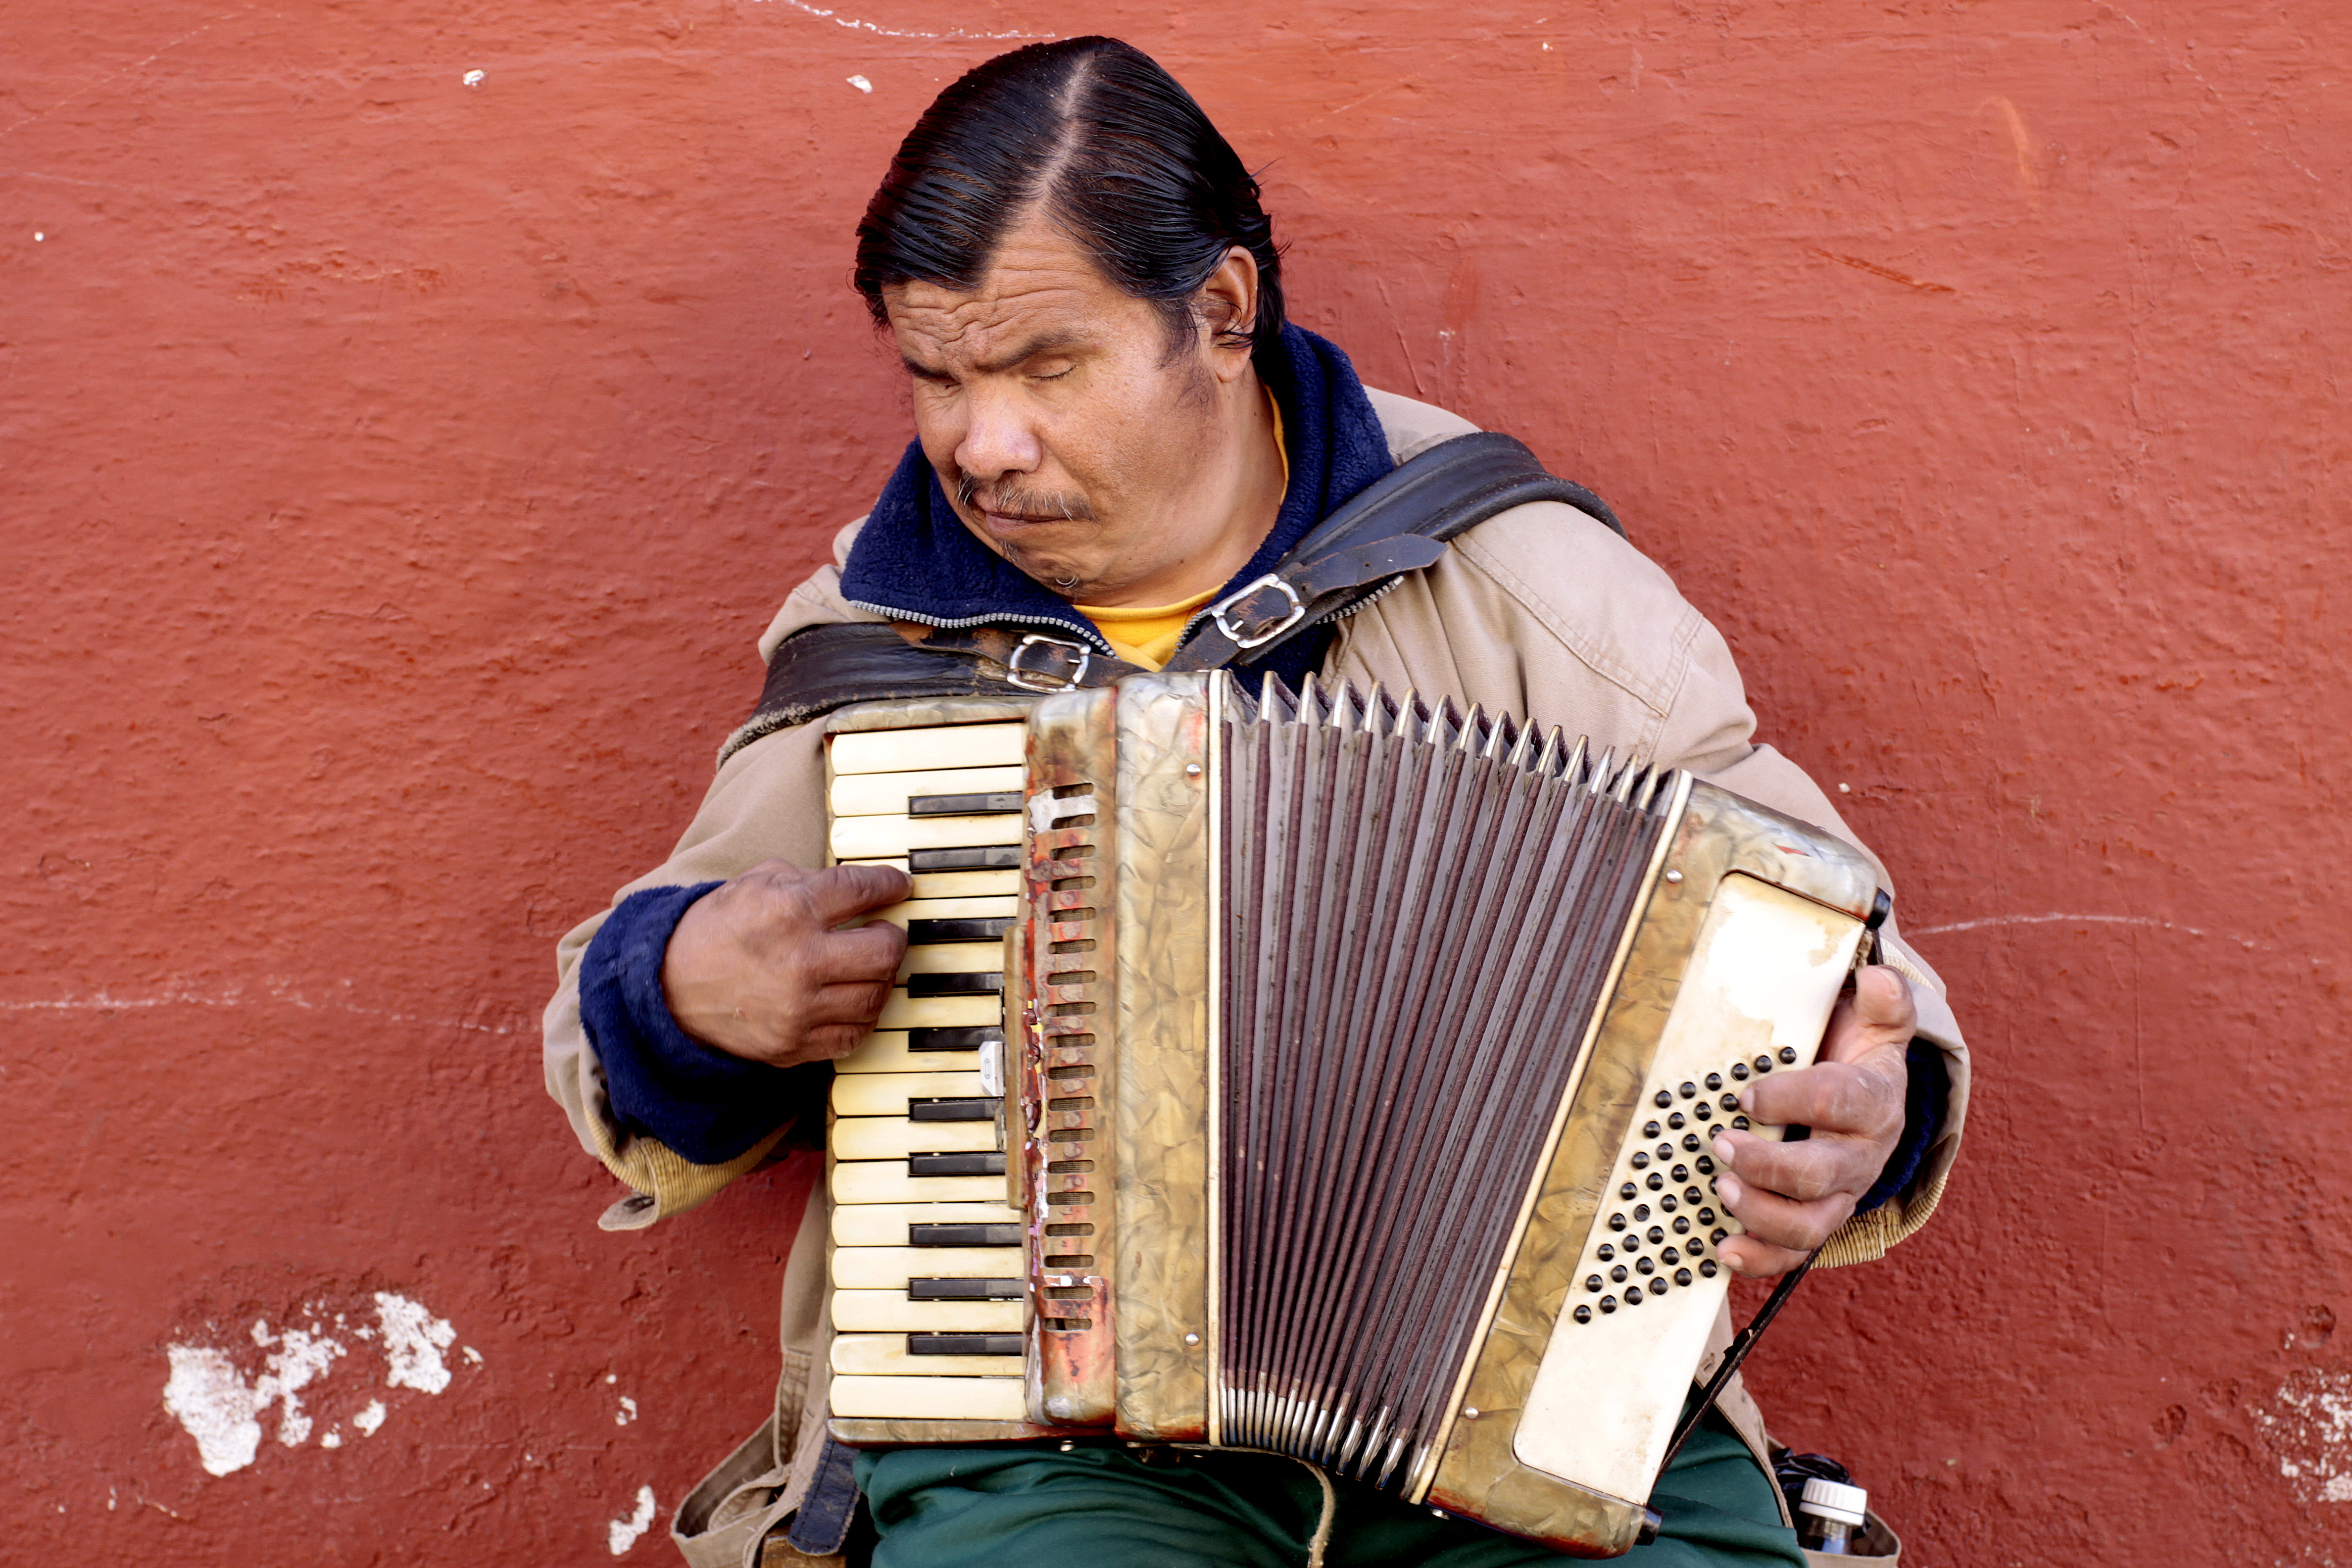 File Blind Accordion Player Jpg Wikimedia Commons